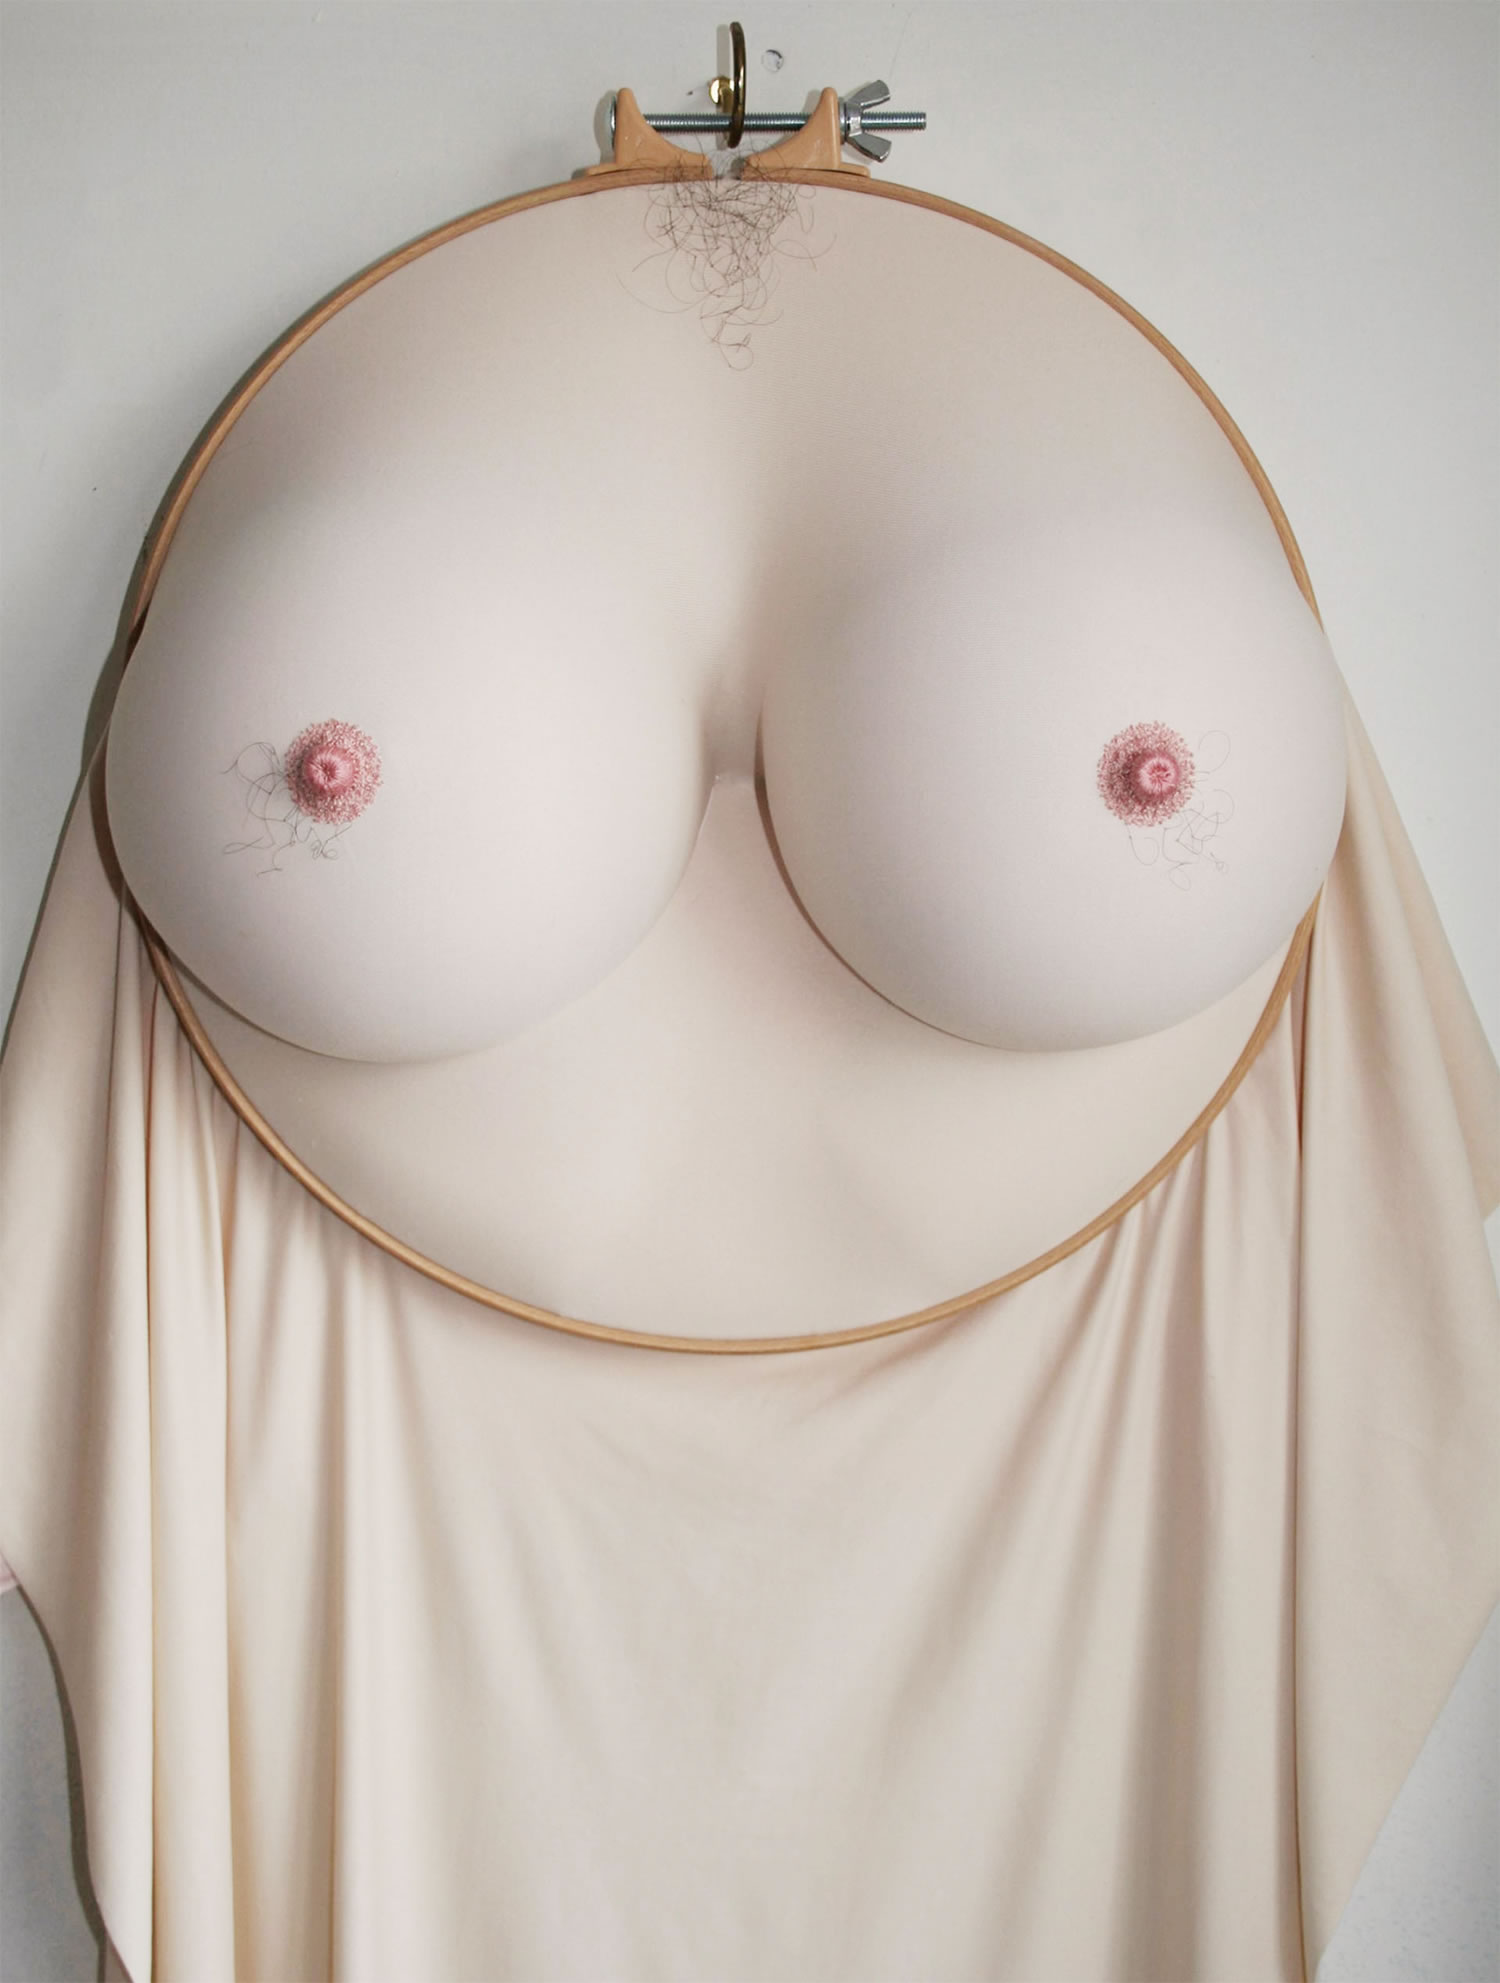 hairy chest and breasts, embroidery